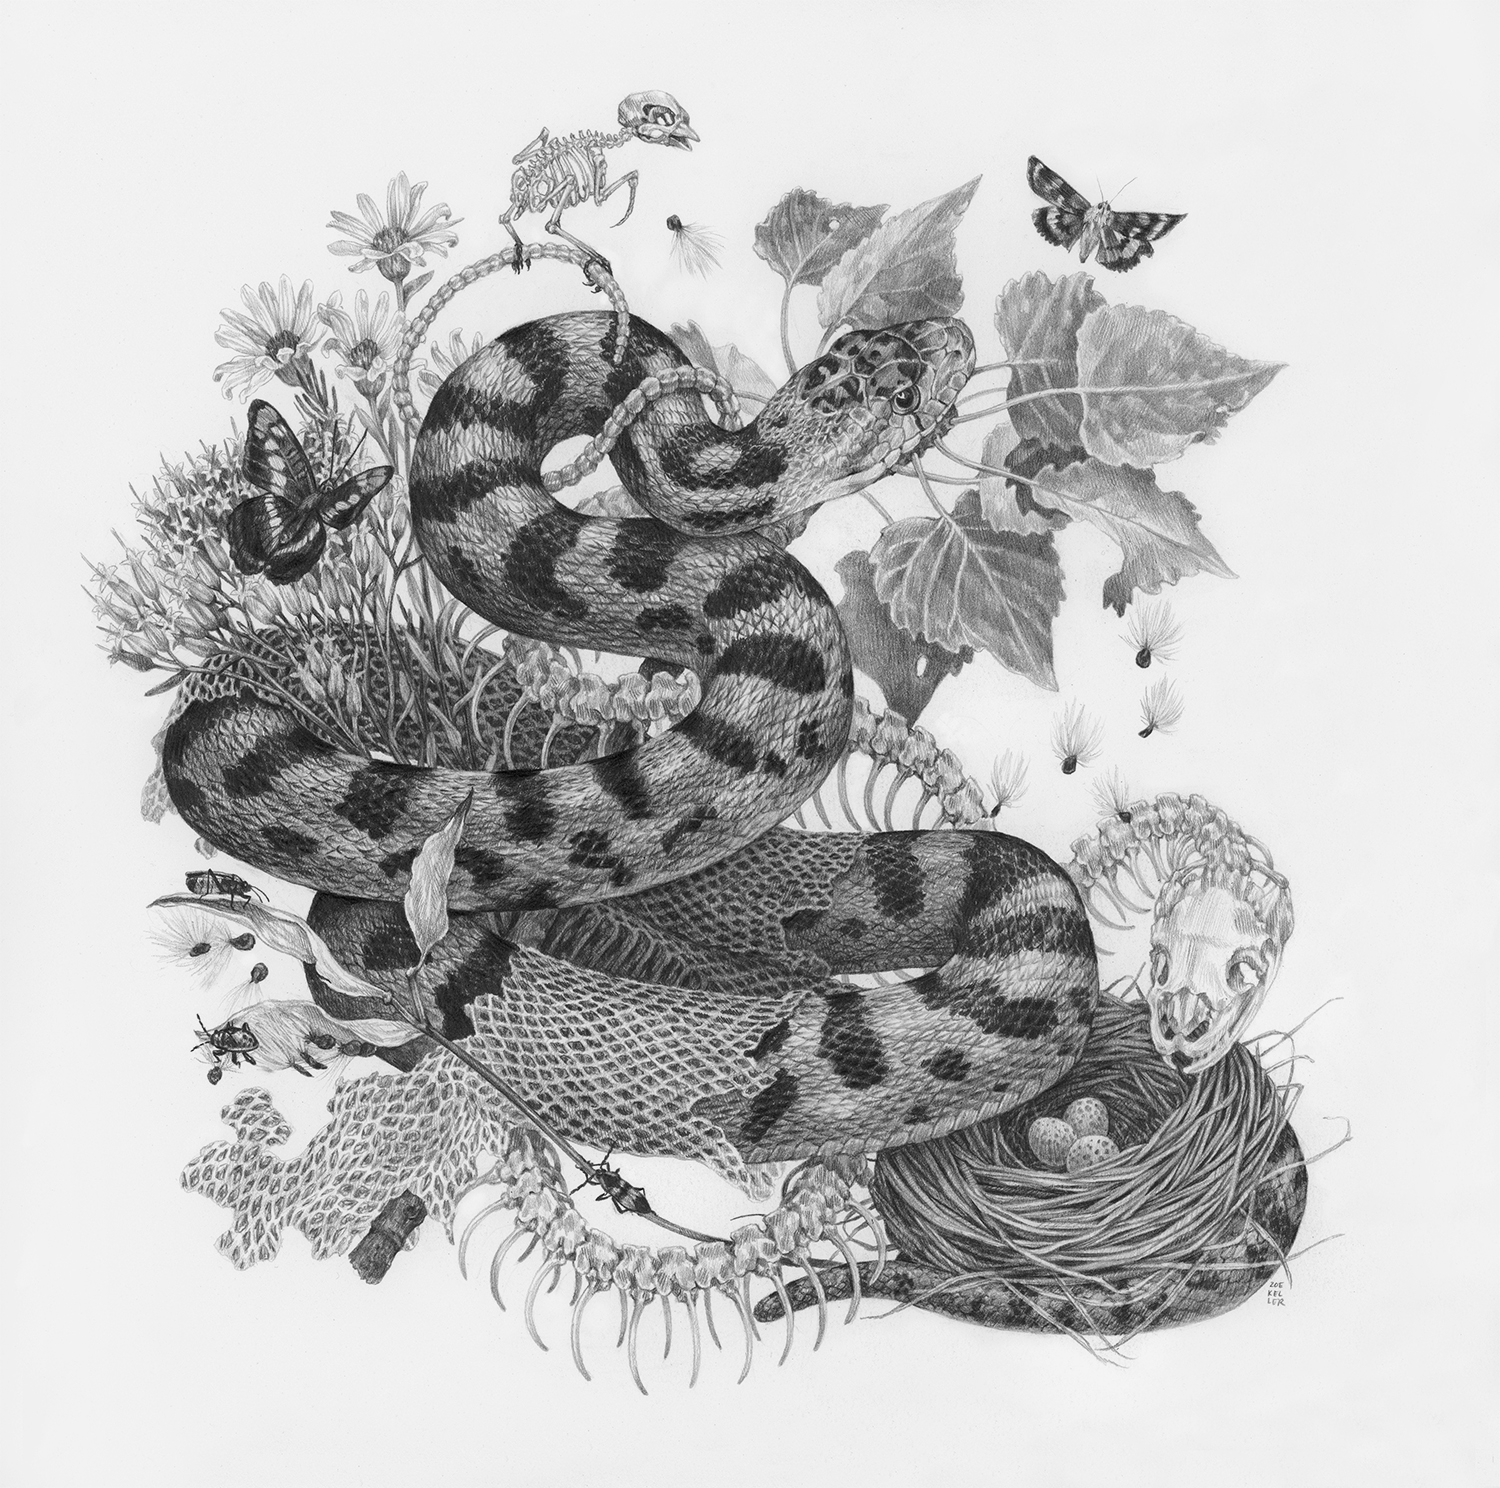 "Pa'Rus, 12"" x 12"", Graphite on paper, 2019 Sold  SPECIES DEPICTED  Gopher Snake, Arizona Sister butterfly, Junco nest, Apholibah Underwing Moth, Large Milkweed Bug, Small Milkweed Bug nymph, Fremont Cottonwood leaves, observed but unidentified wildflowers"